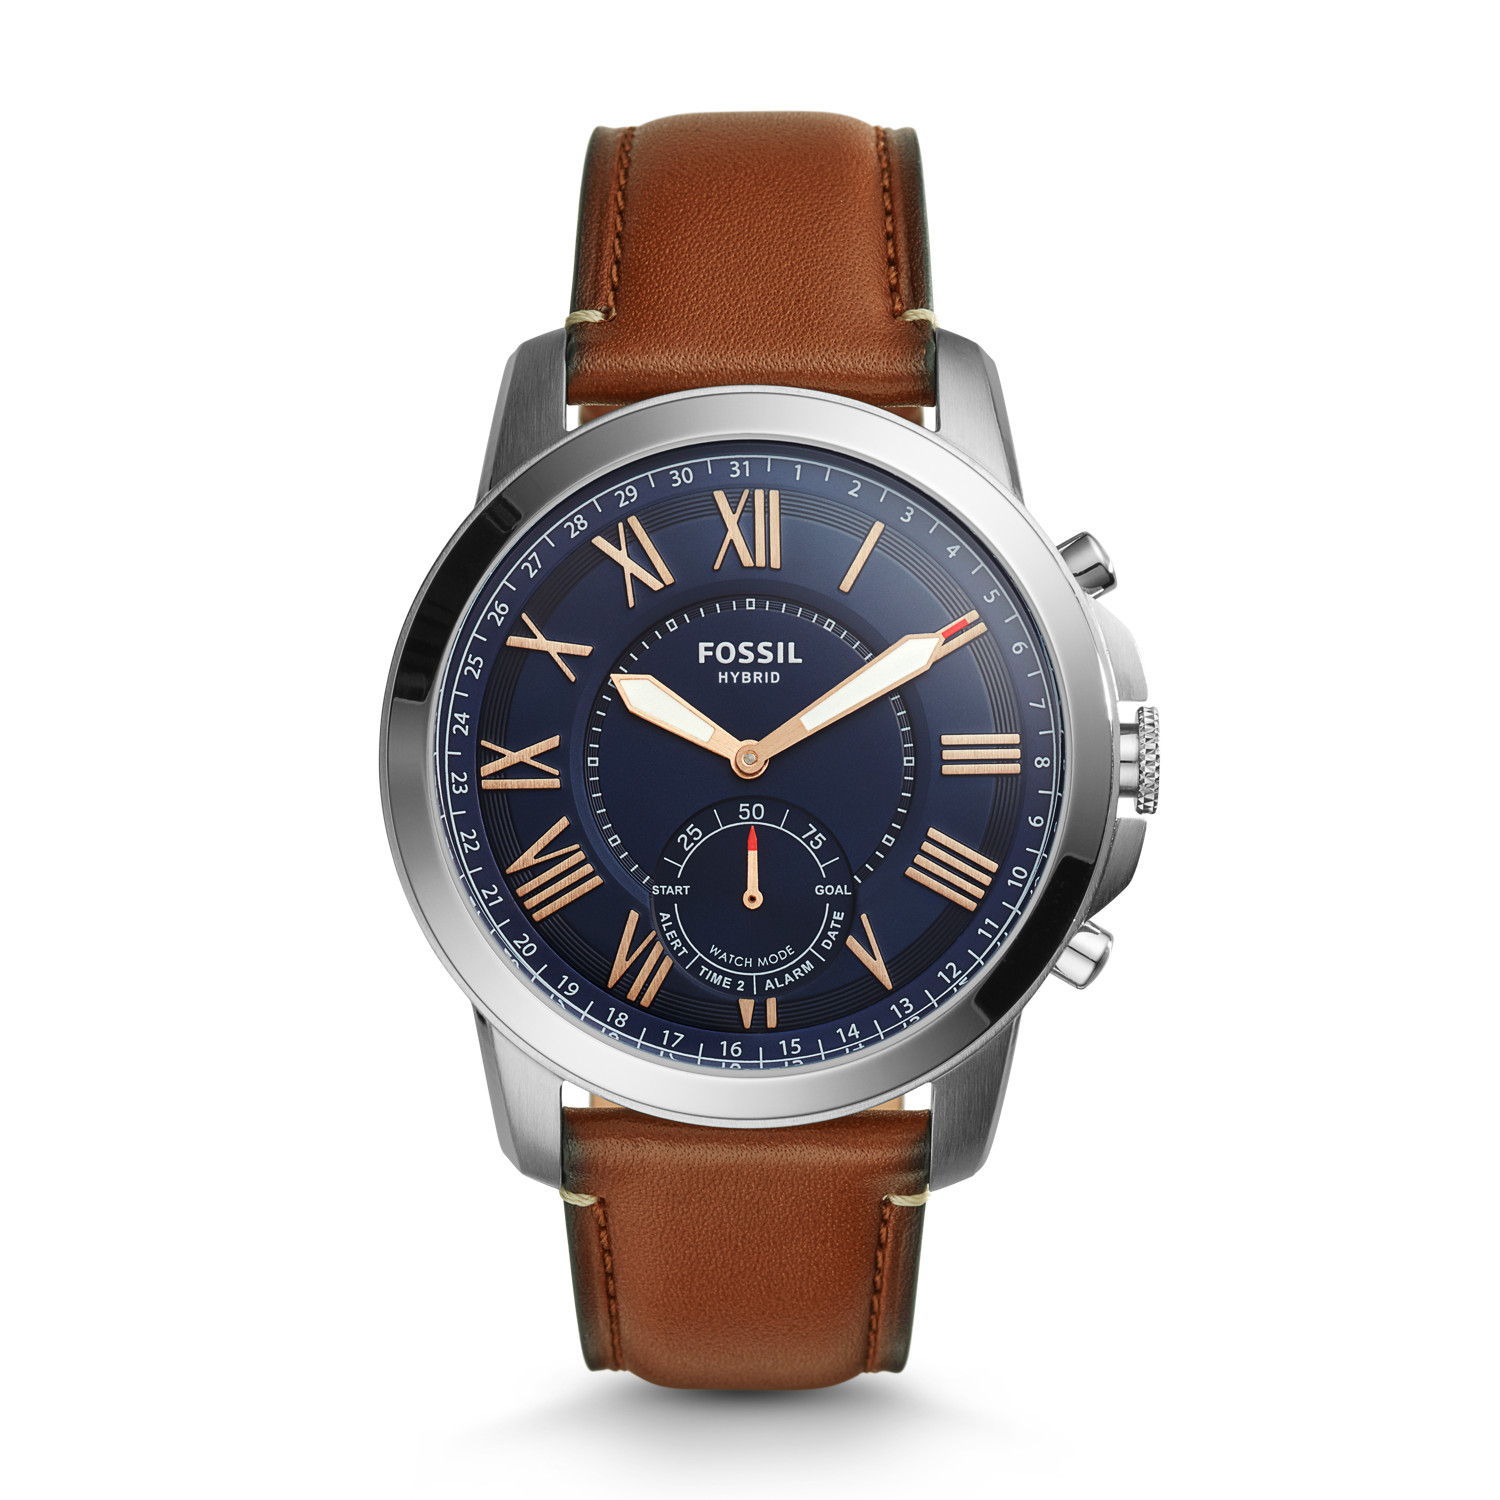 b15a481c42a2c Hybrid Smartwatch - Grant Light Brown Leather - Fossil